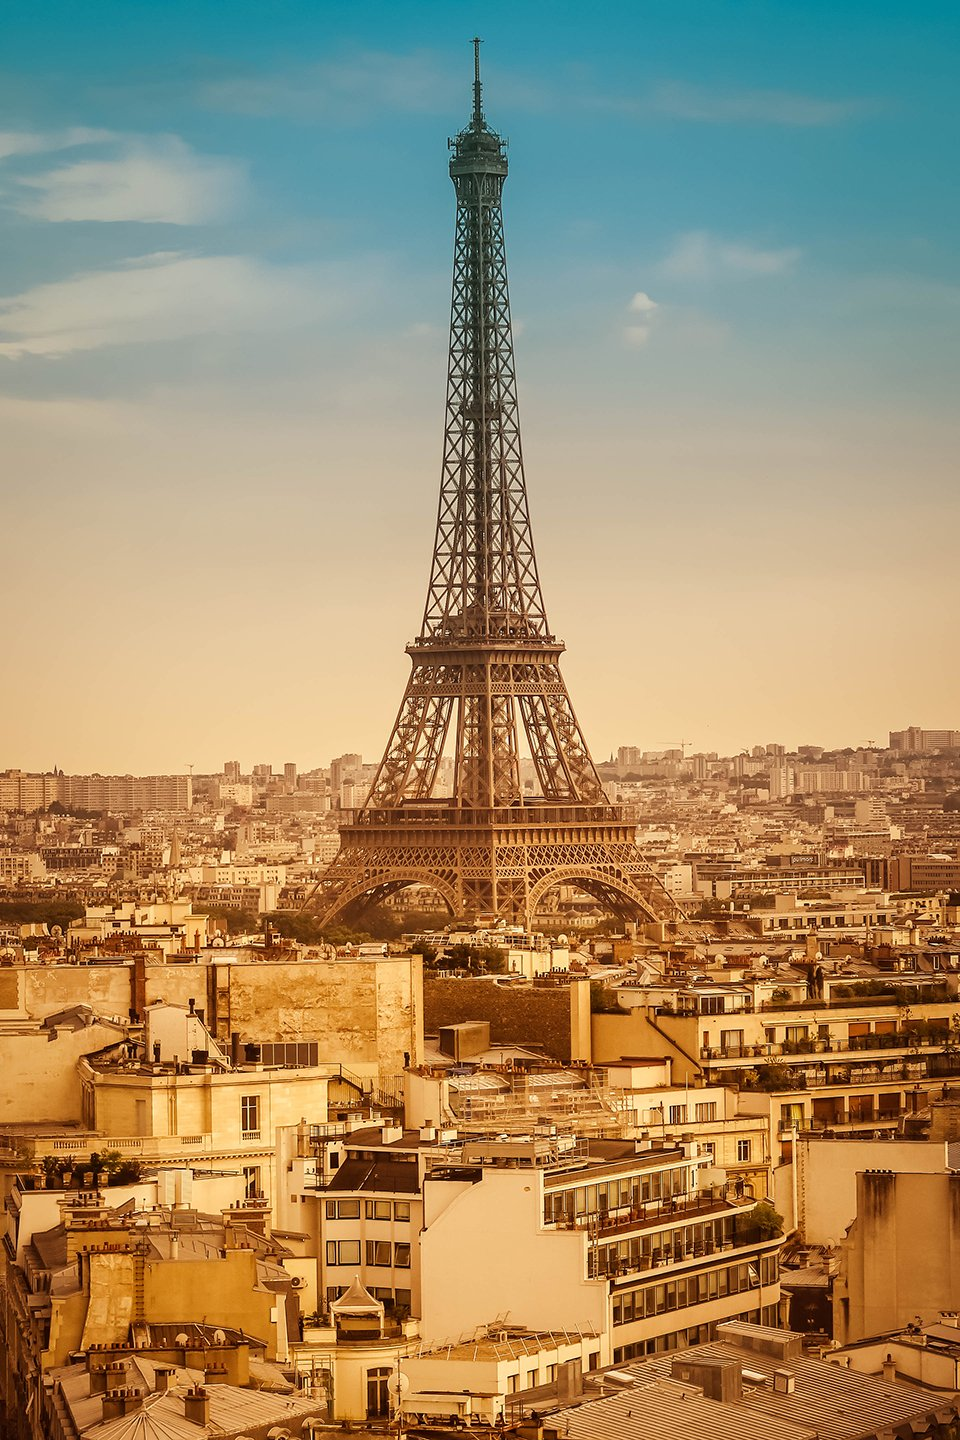 The view of Paris skyline from here is astounding!